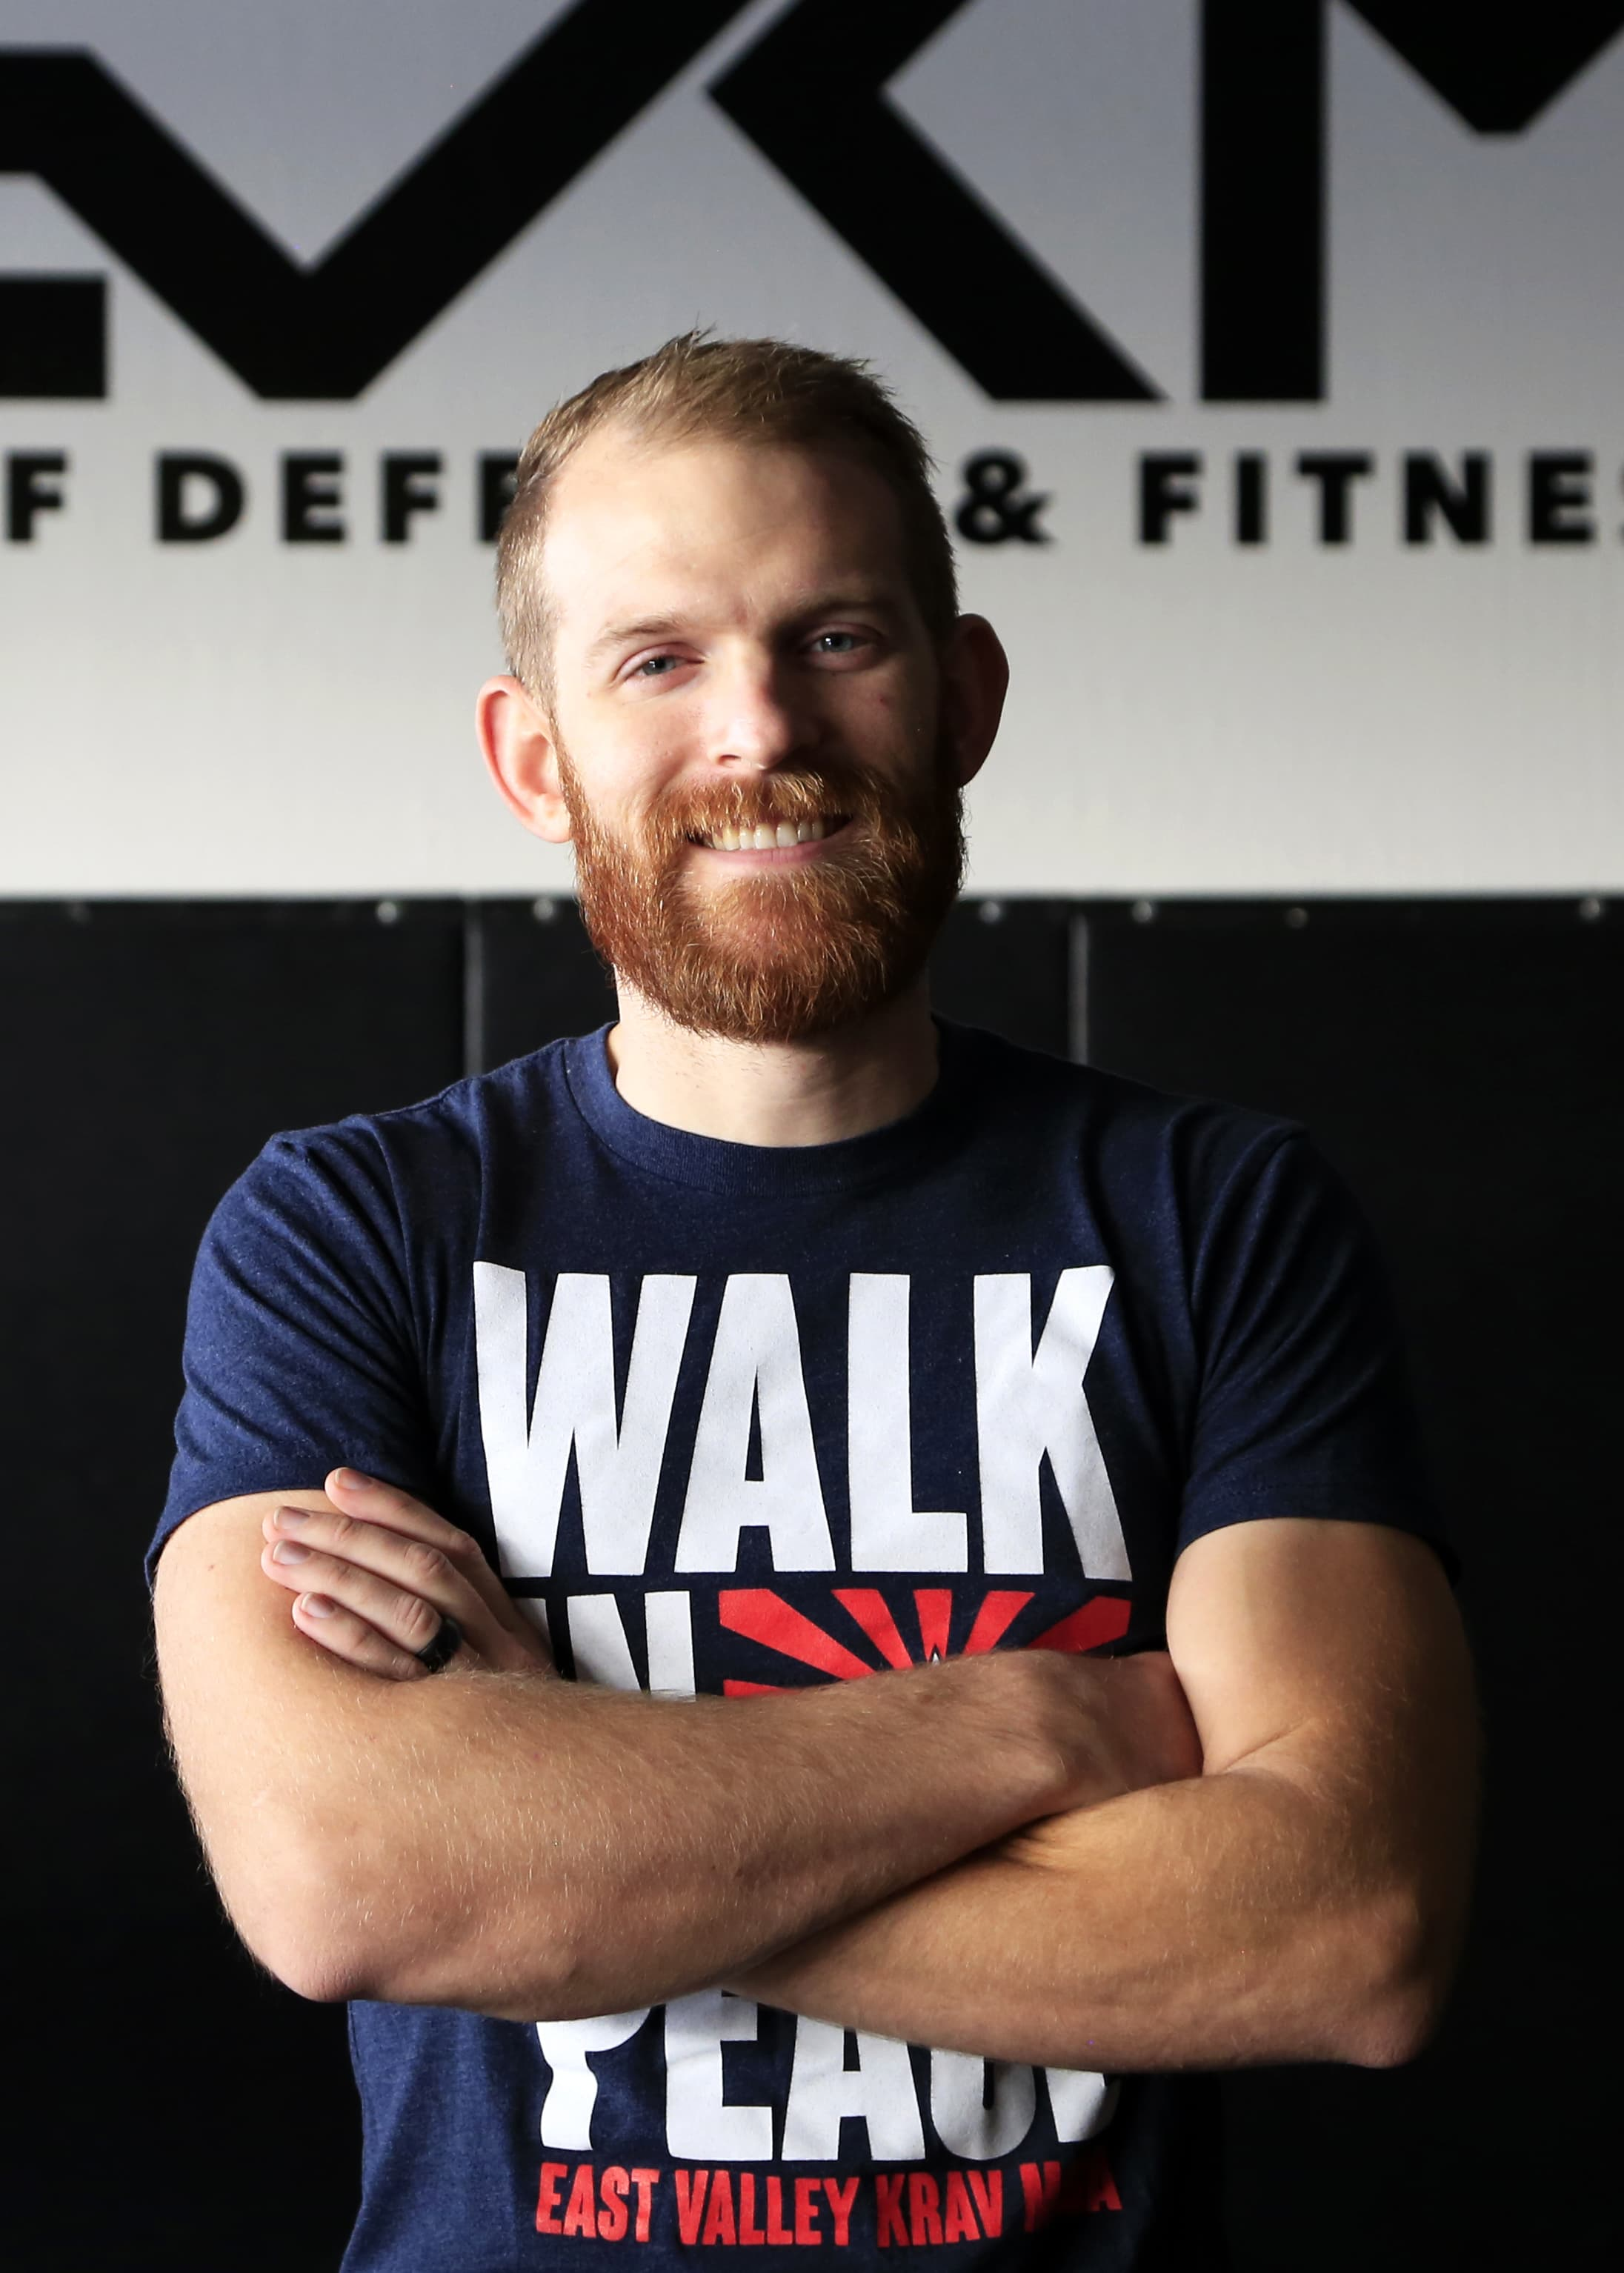 Eli Wegele in Tempe - EVKM Self Defense & Fitness